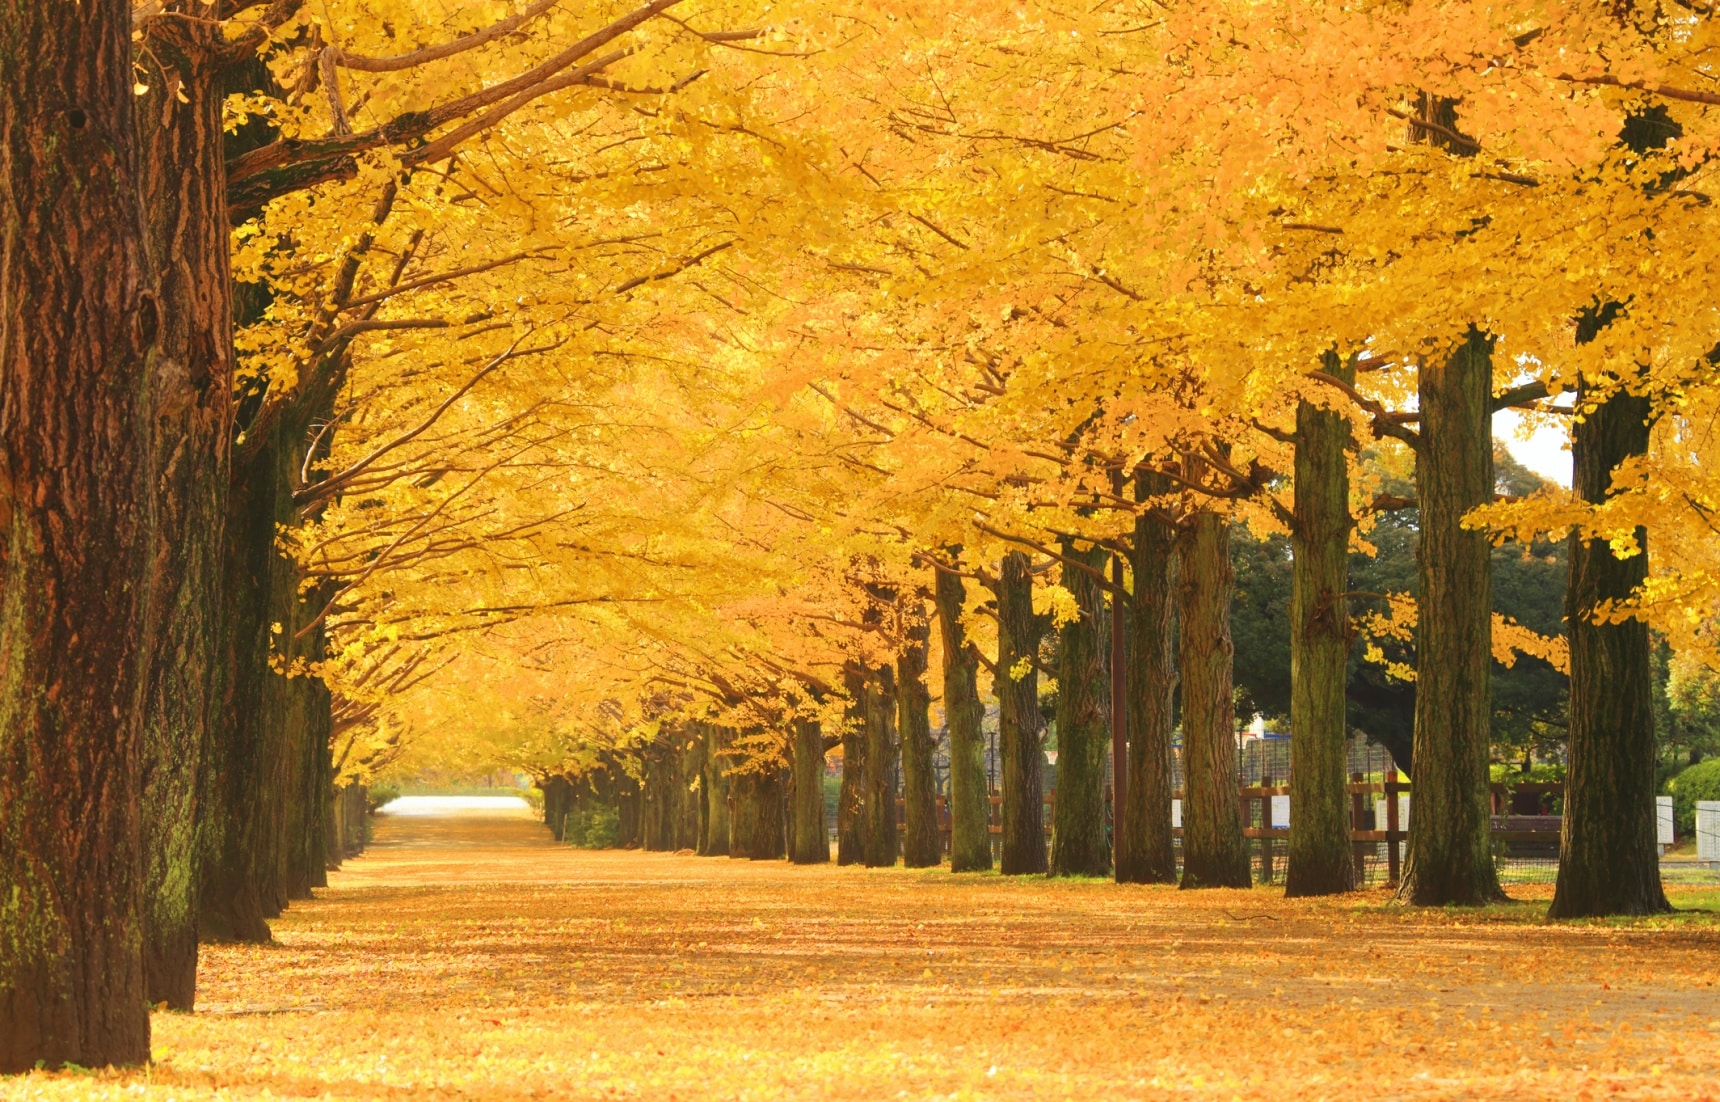 Outer Tokyo's 5 Best Fall Foliage Spots